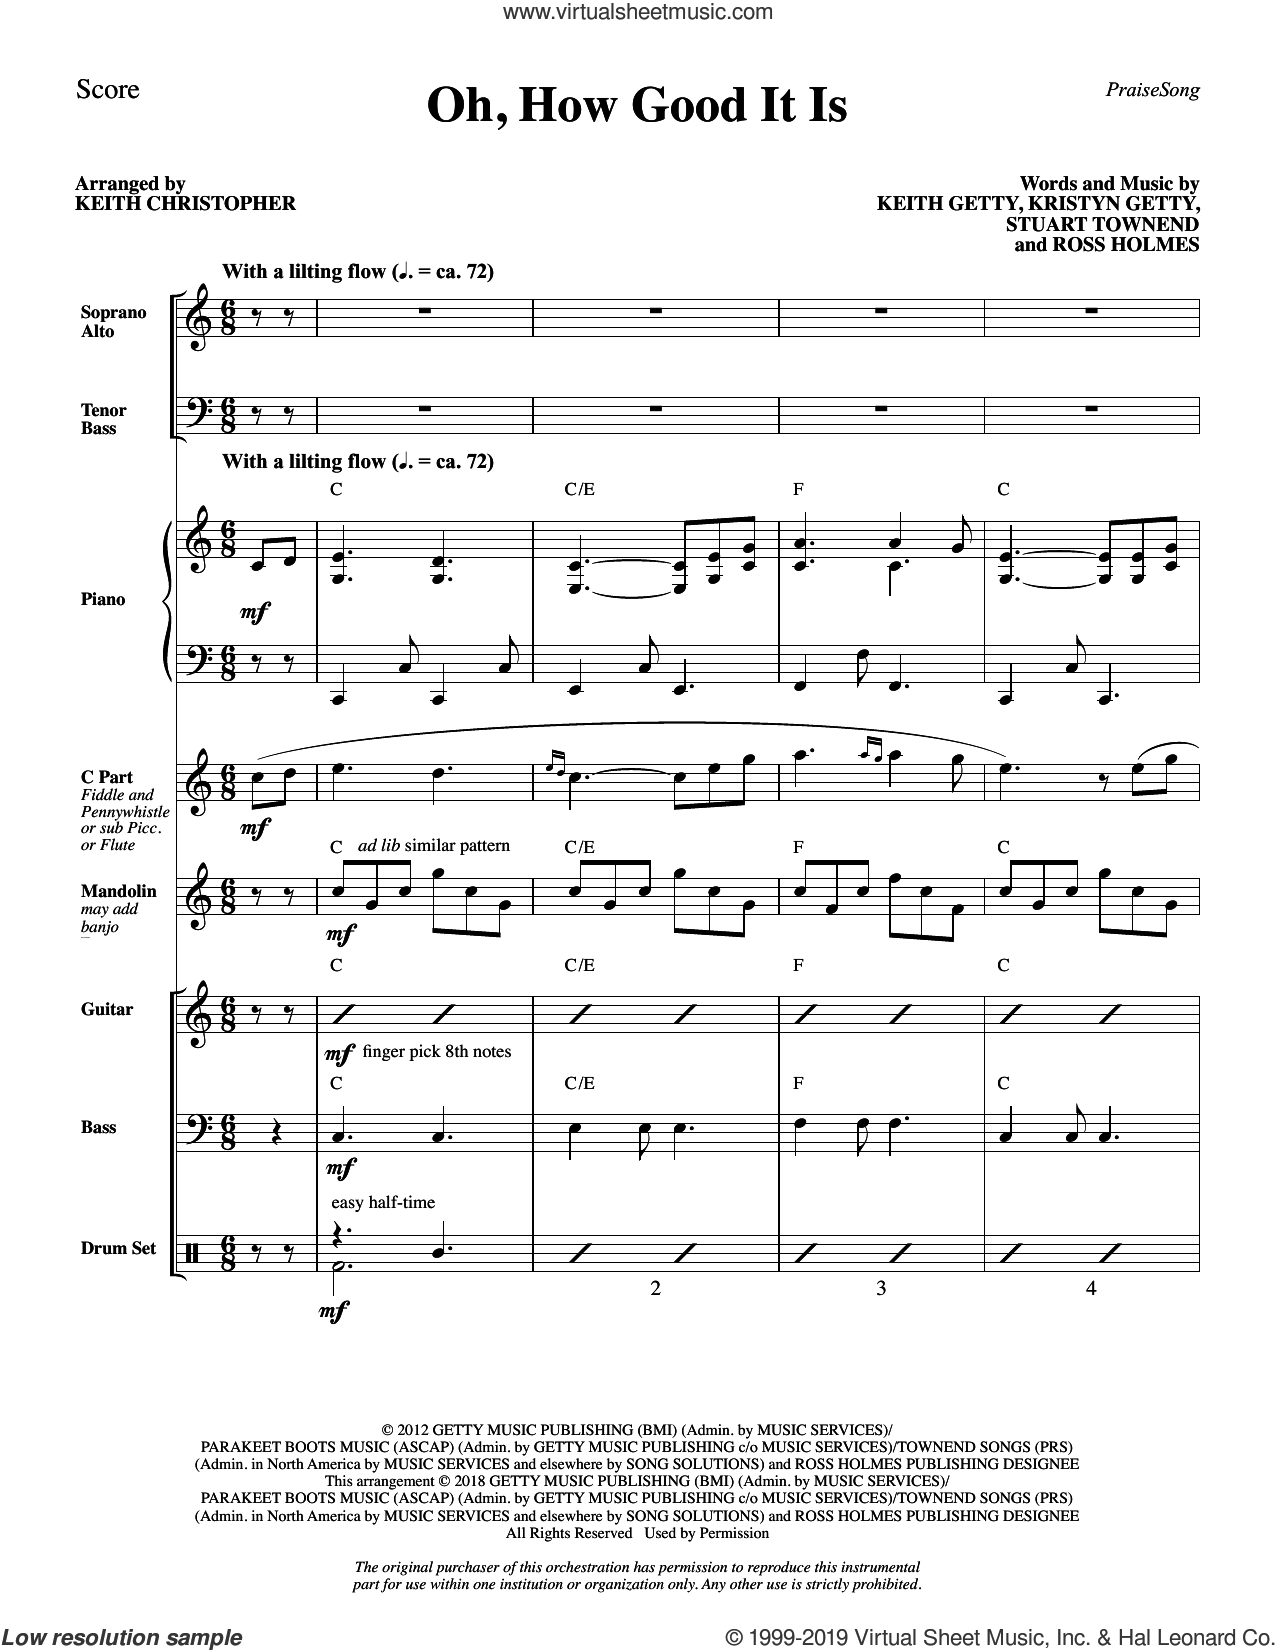 Oh, How Good It Is (arr. Keith Christopher) (COMPLETE) sheet music for orchestra/band by Keith Getty, Keith Getty, Kristyn Getty, Ross Holmes & Stuart Townend, Kristyn Getty, Ross Holmes and Stuart Townend, intermediate skill level